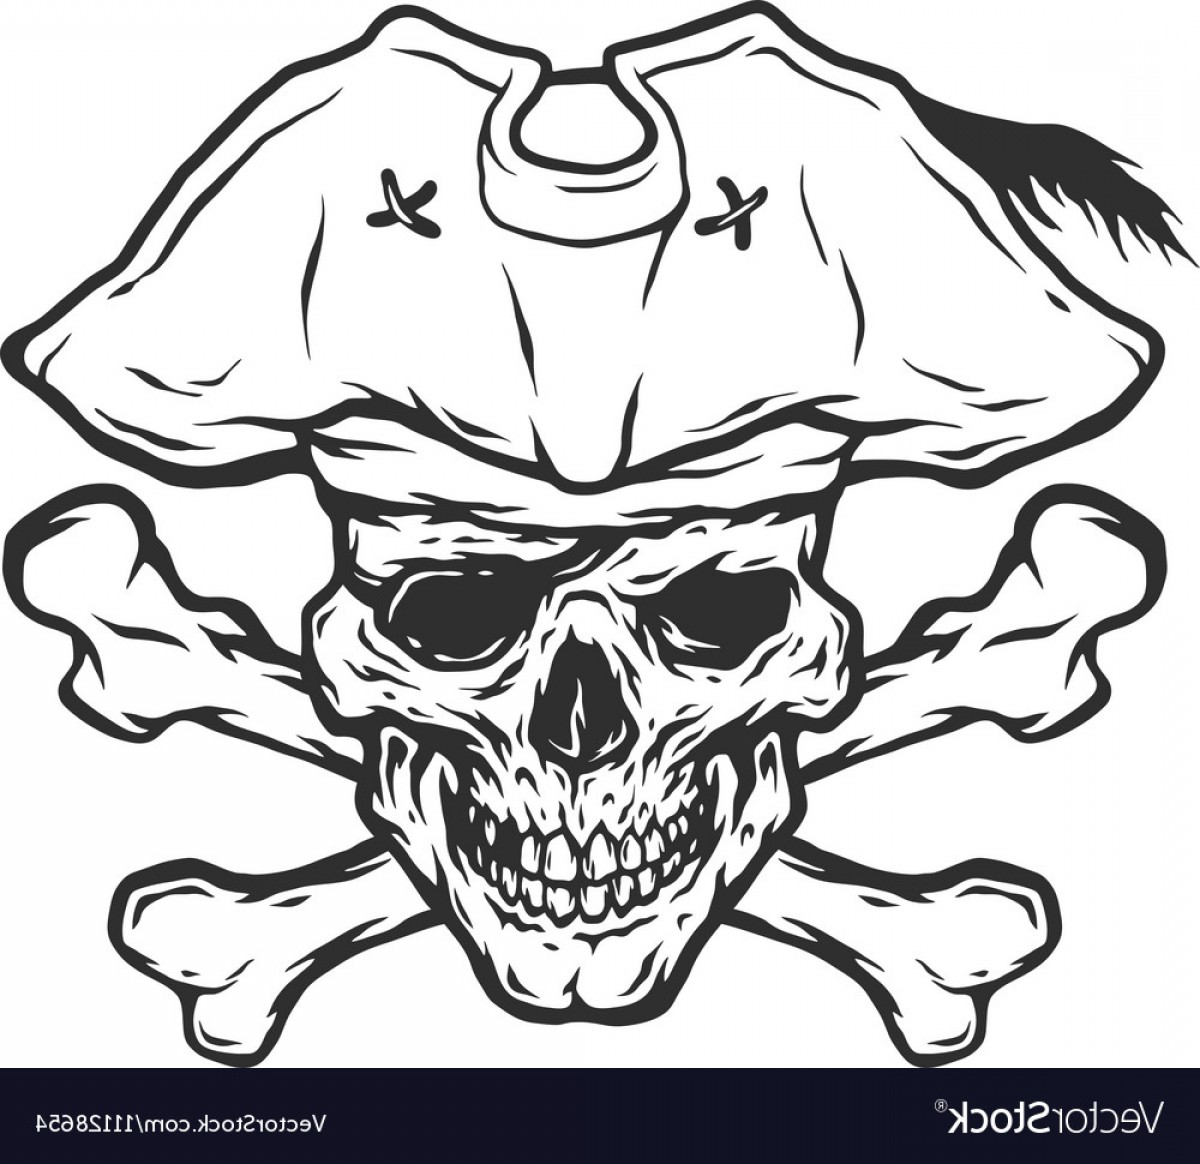 Skull ND Crossbones Vector: Pirate Skull And Crossbones Vector